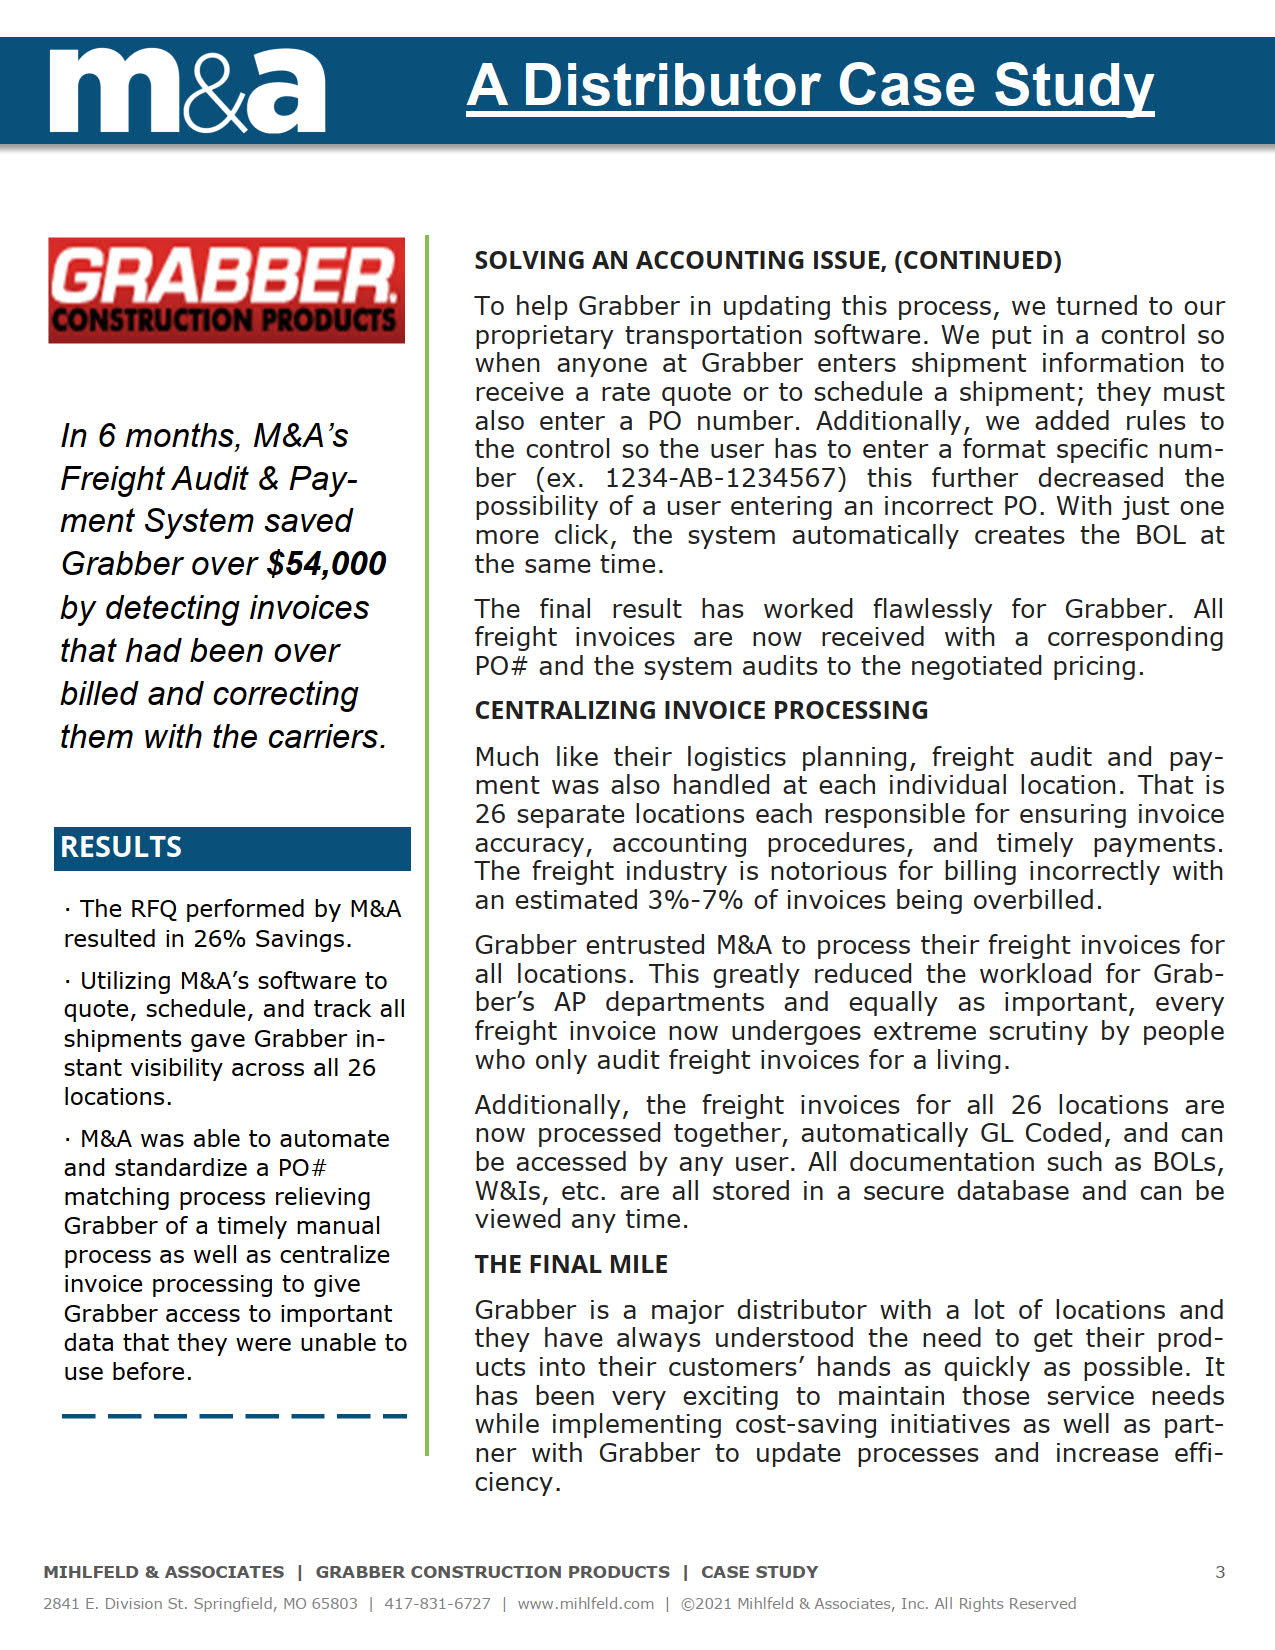 GRBB Case study Picture 3